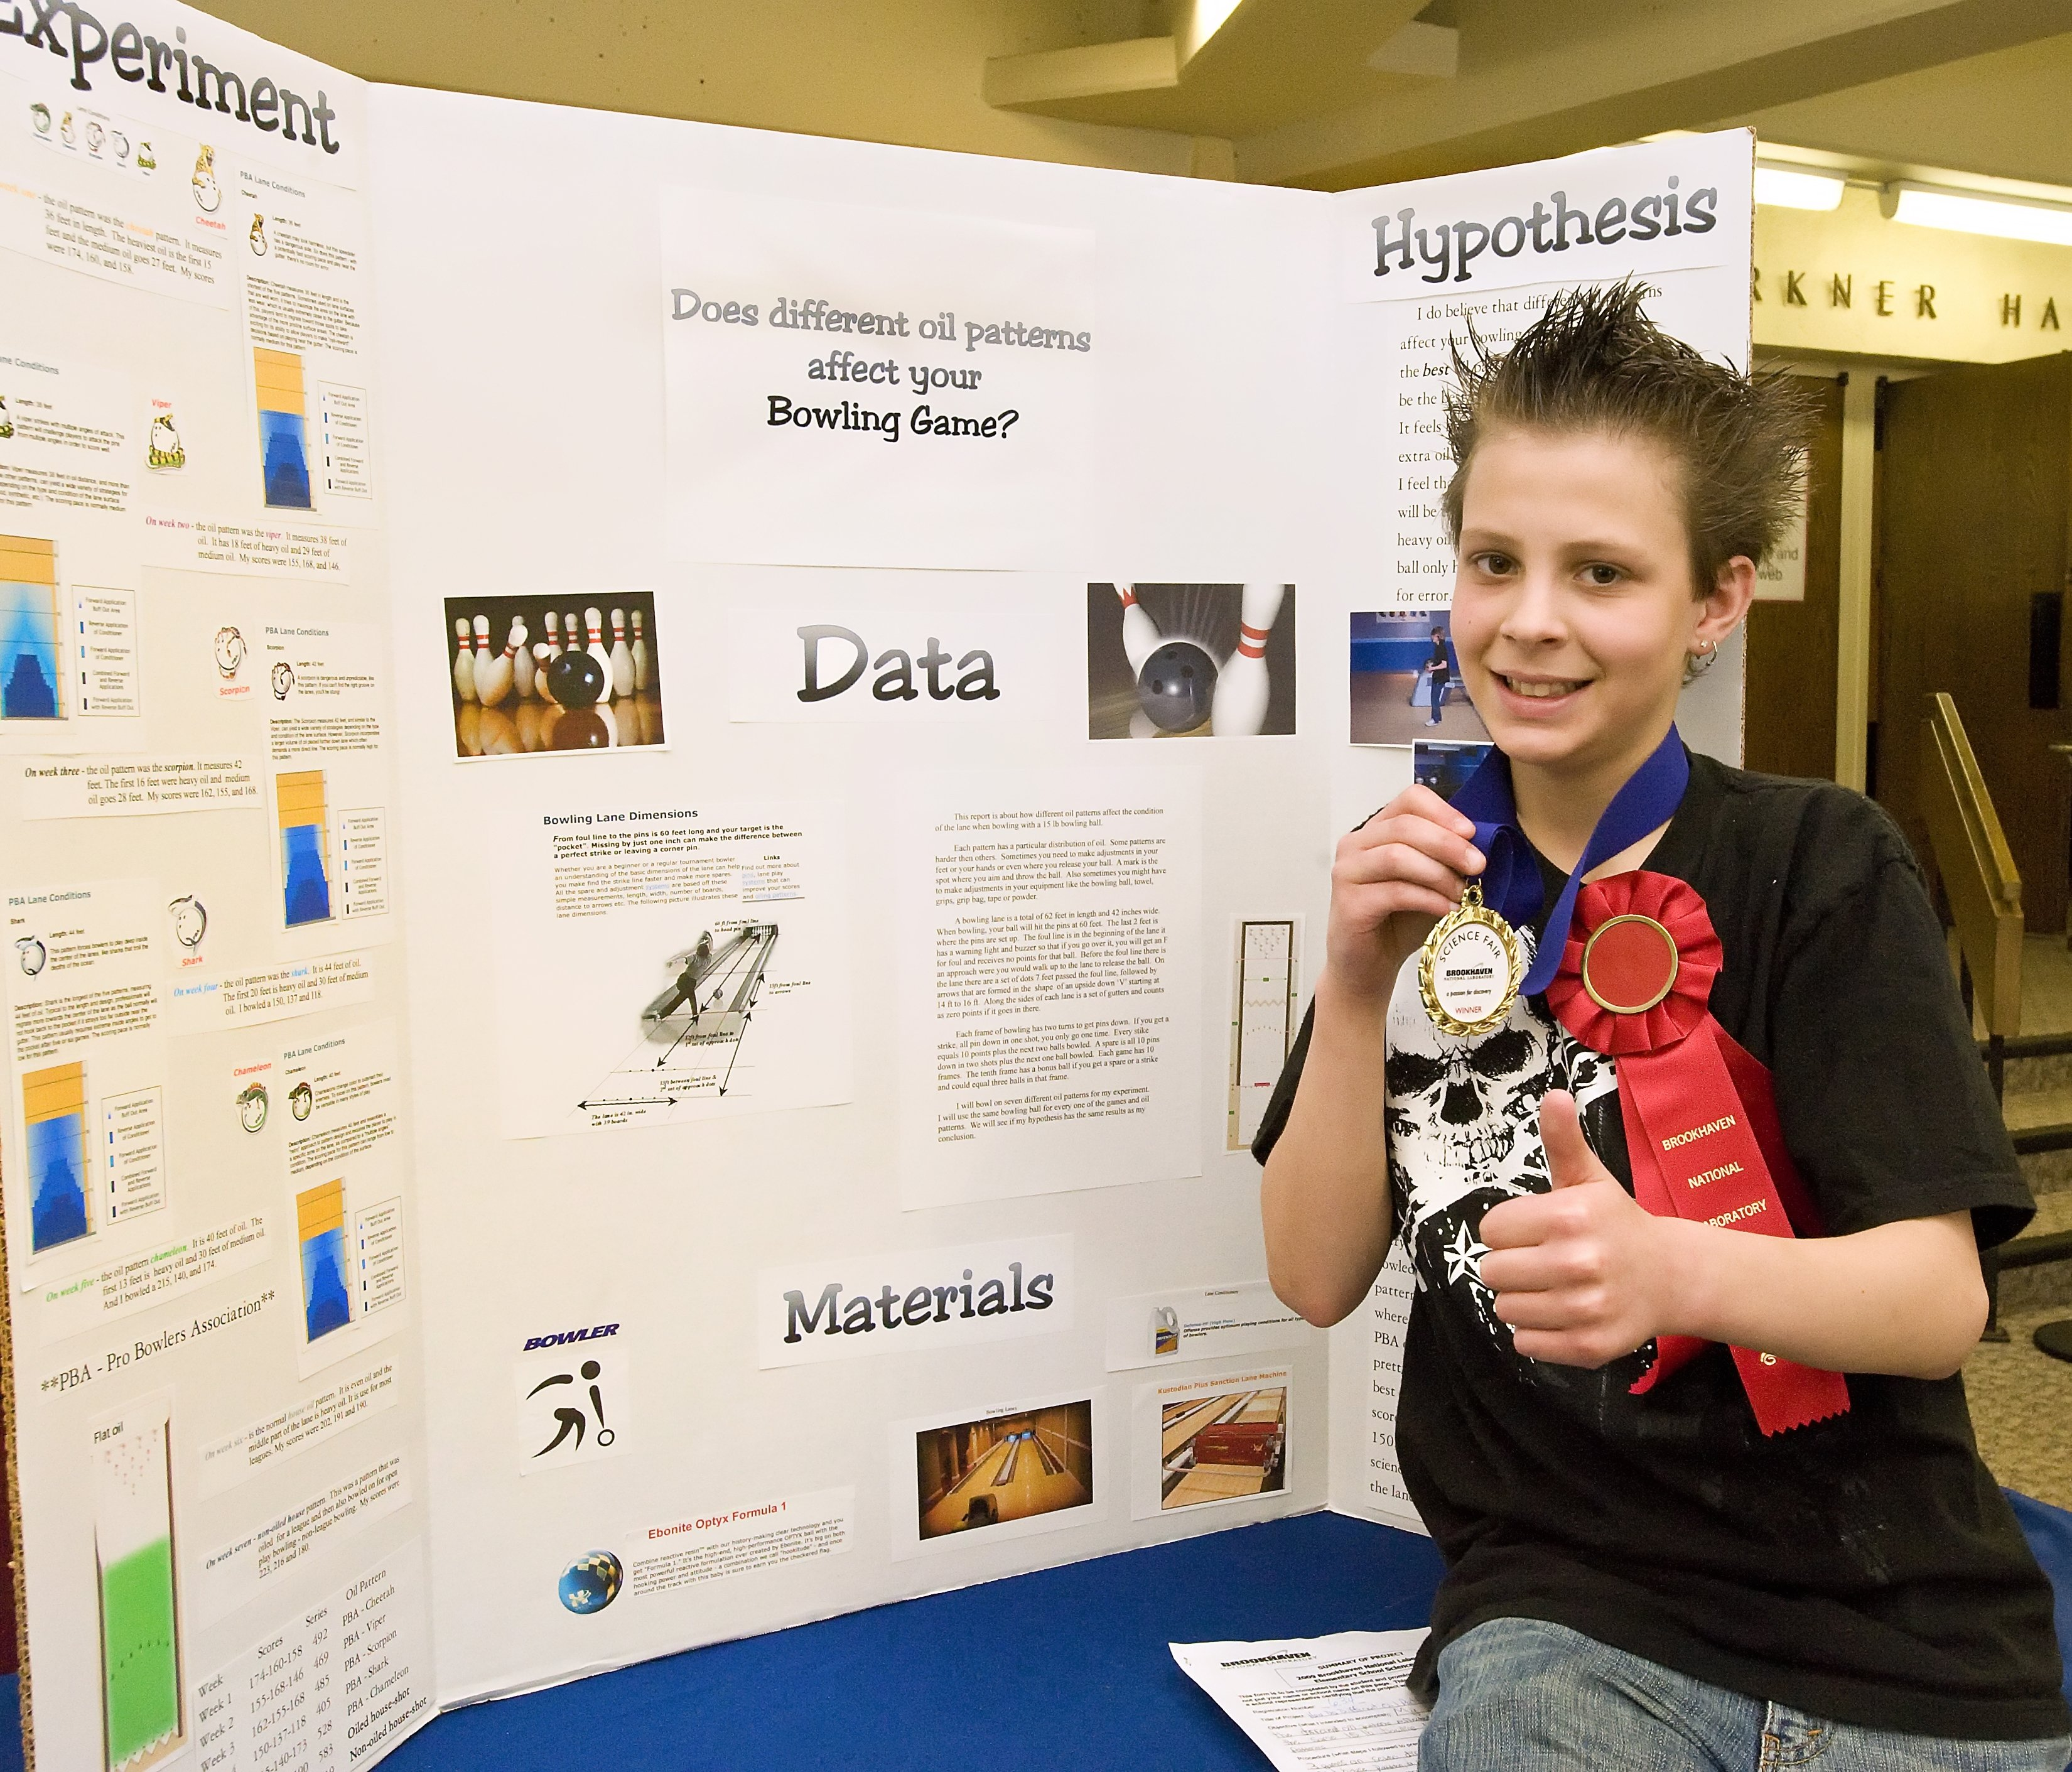 10 Fabulous Science Fair Projects Ideas For 5Th Grade www science fair projects custom paper academic writing service 11